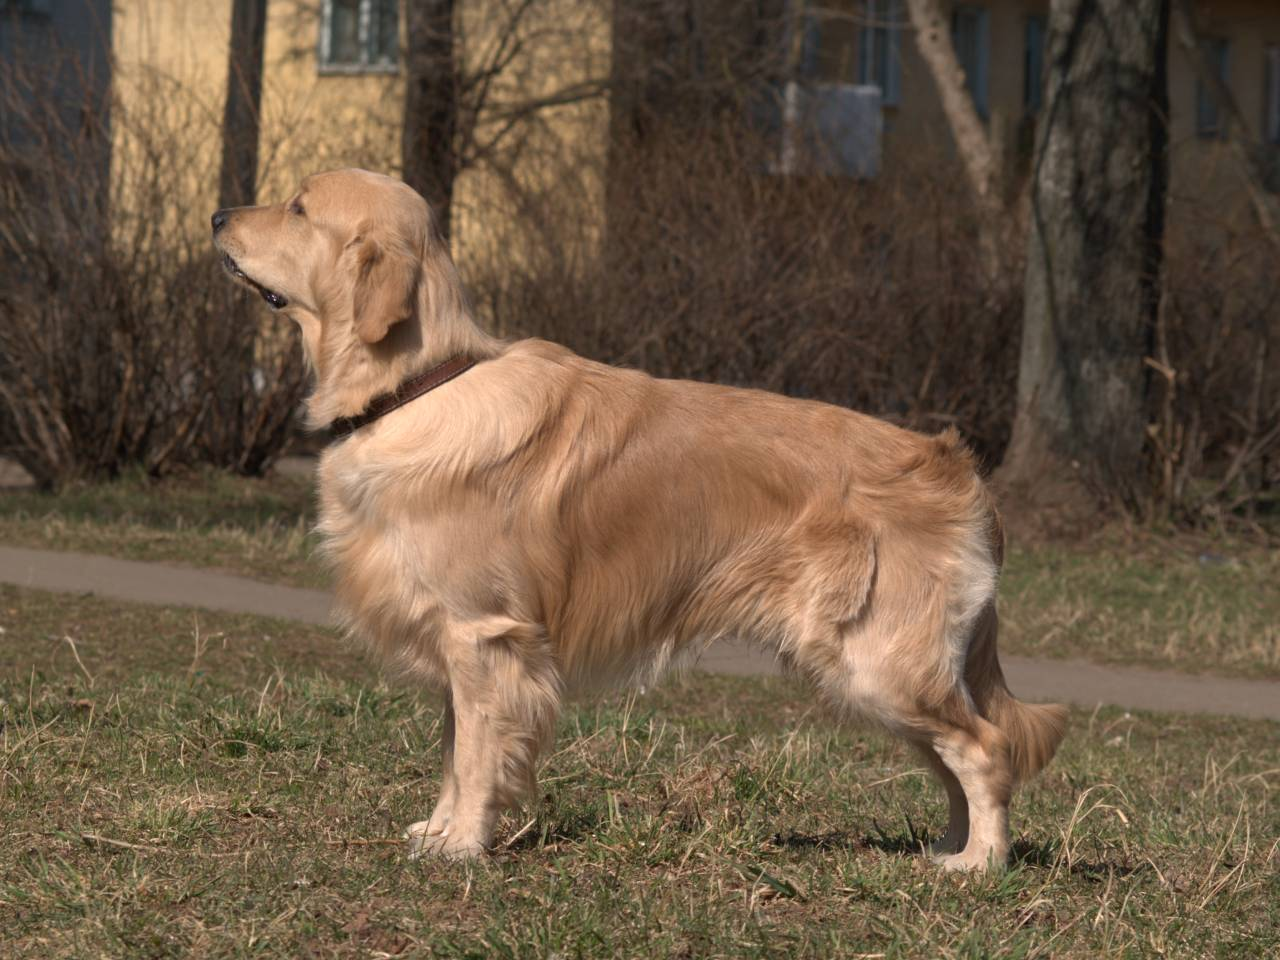 Golden Retriever - Simple English Wikipedia, the free